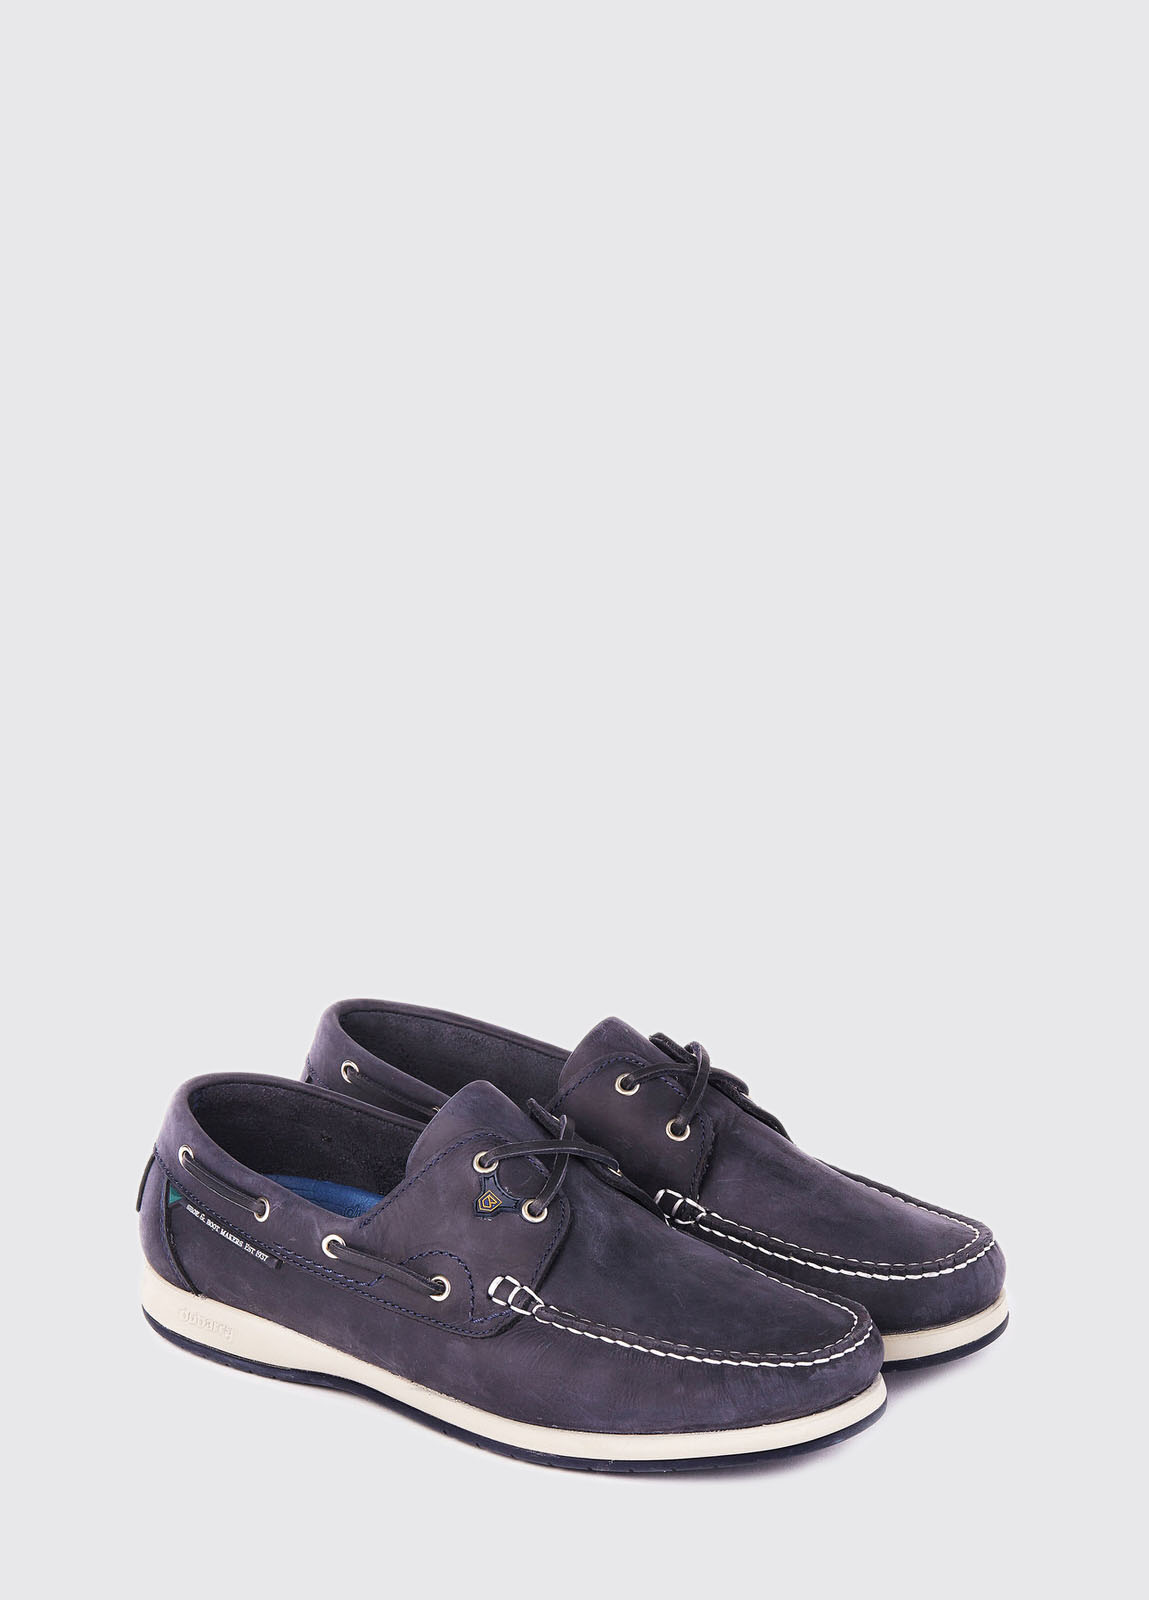 Sailmaker X LT Deck Shoe - Navy